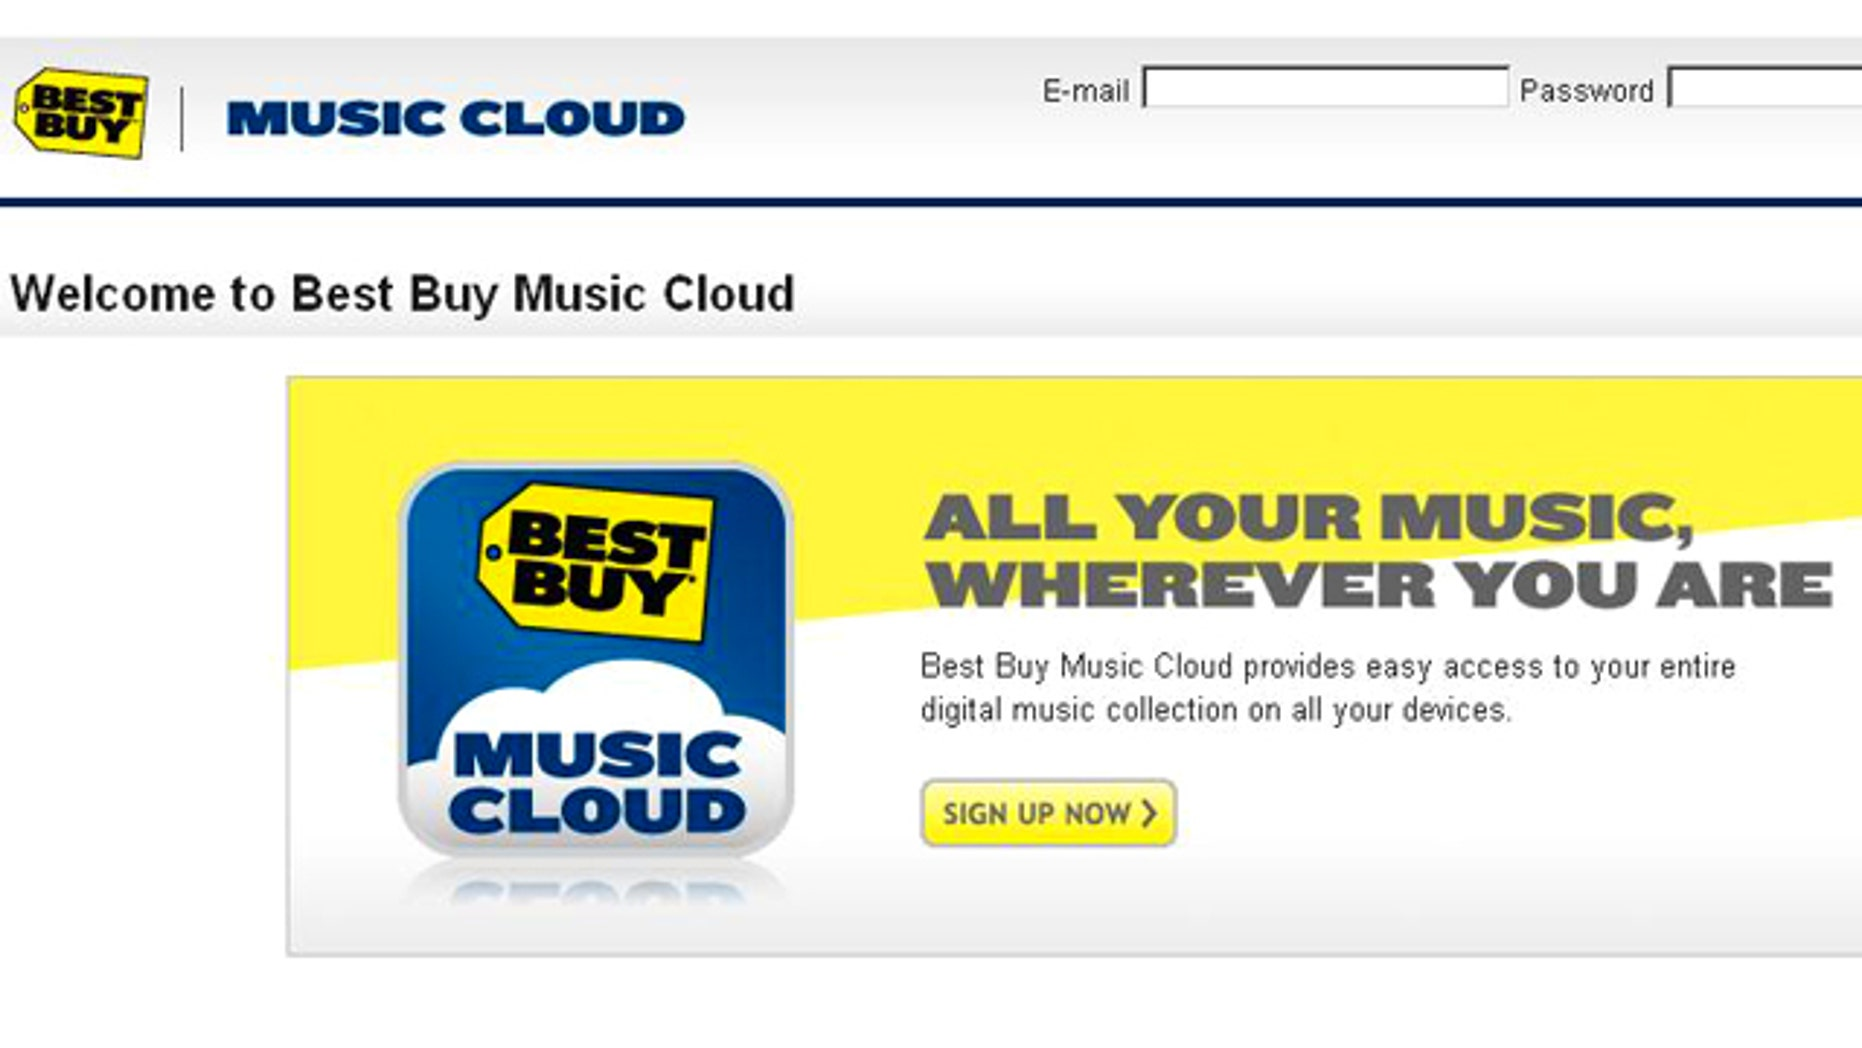 Best Buy's new Music Cloud service is the latest service to offer online music access.